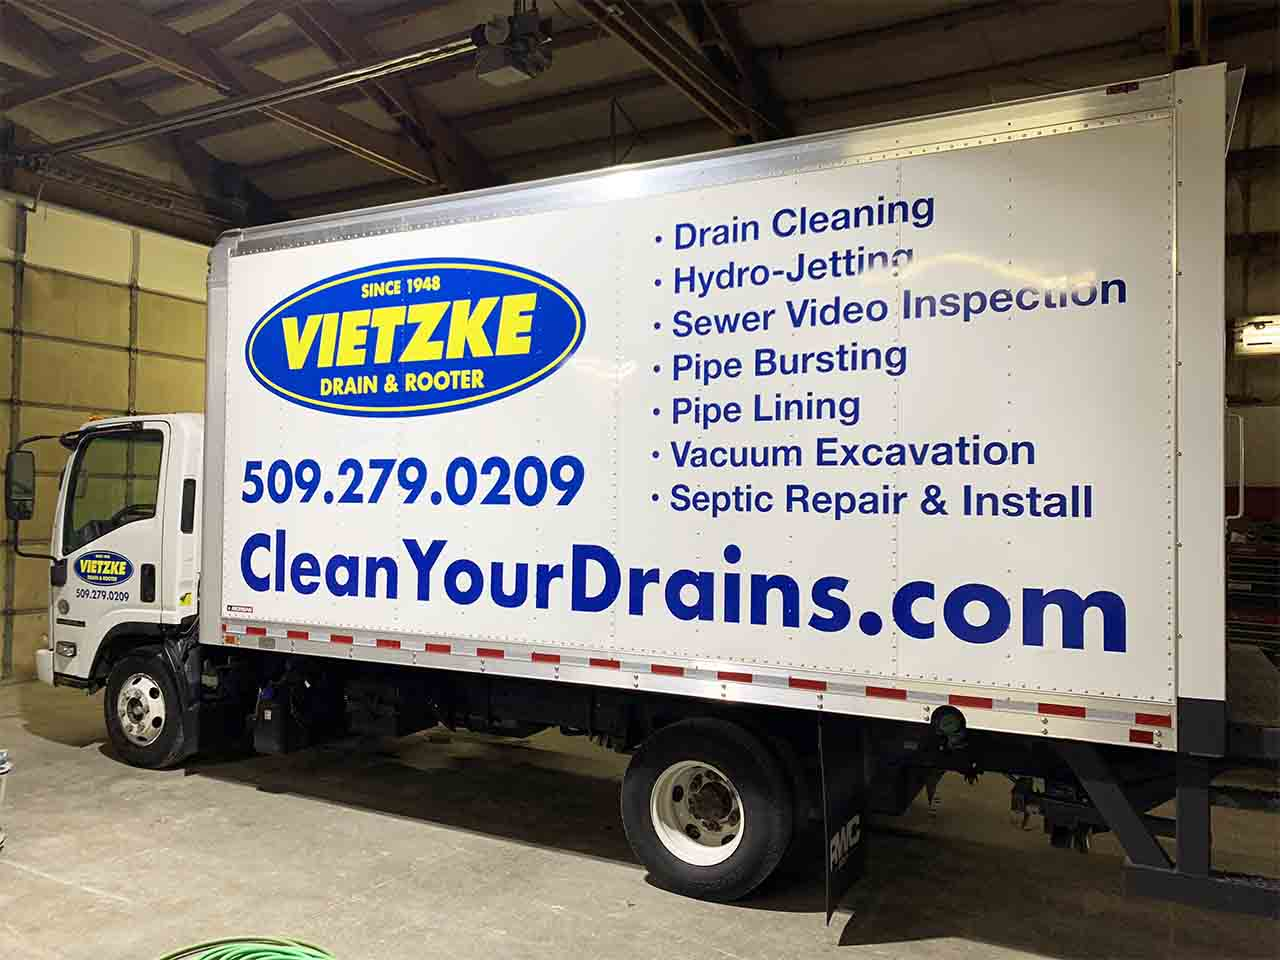 Drain Cleaning Vietzke